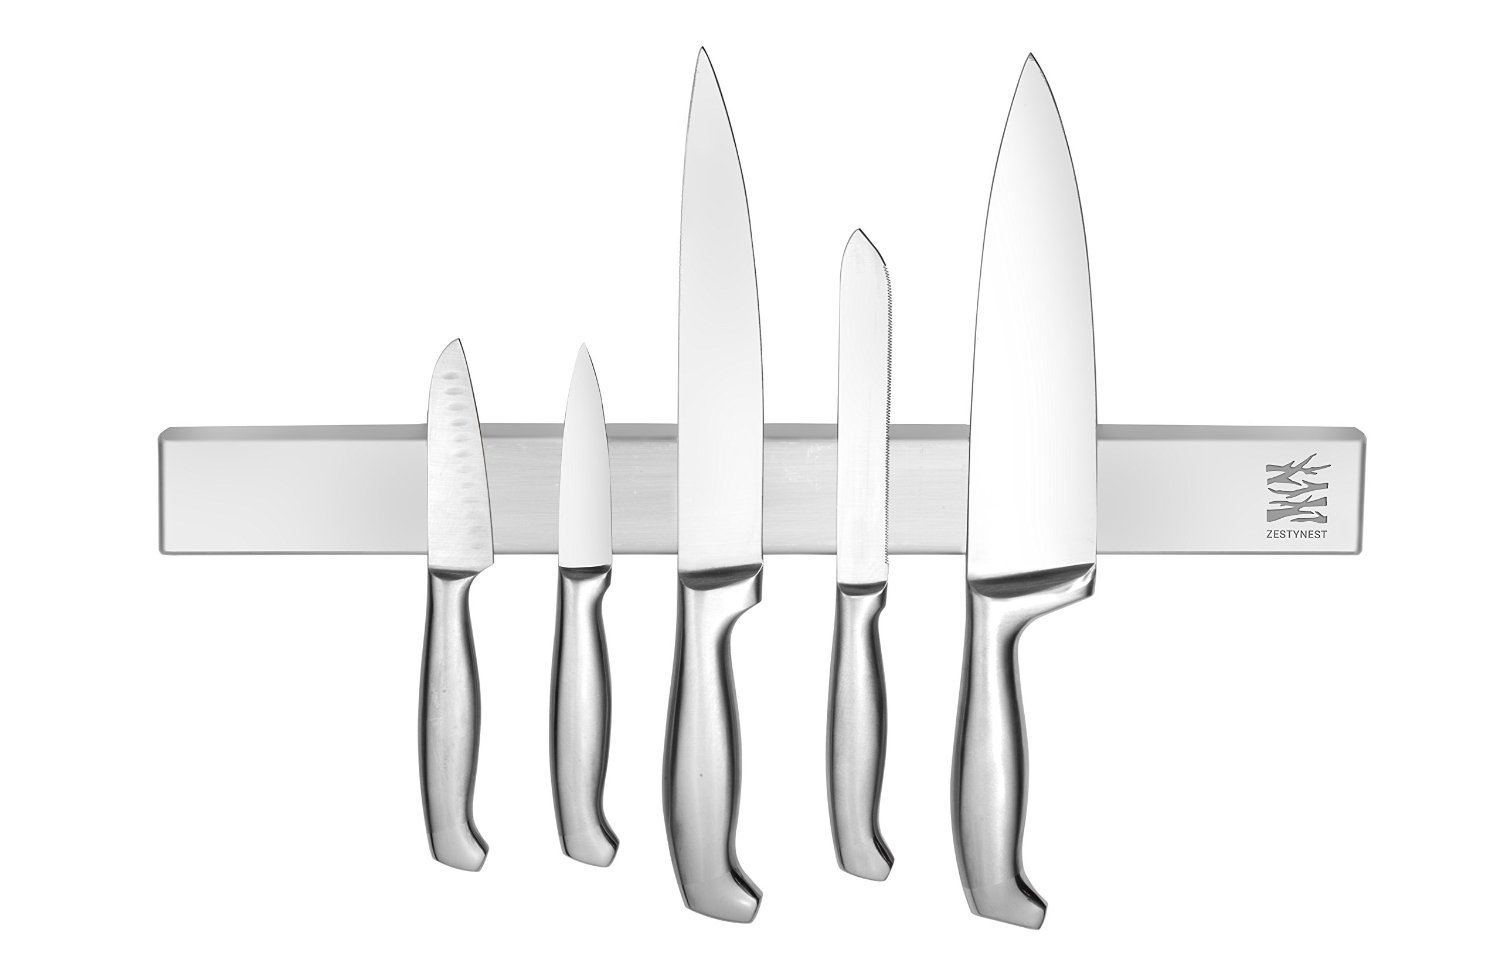 kitchen tool holder countertop materials stainless steel magnetic knife bar with multipurpose use as rack strip utensil art supply organizer